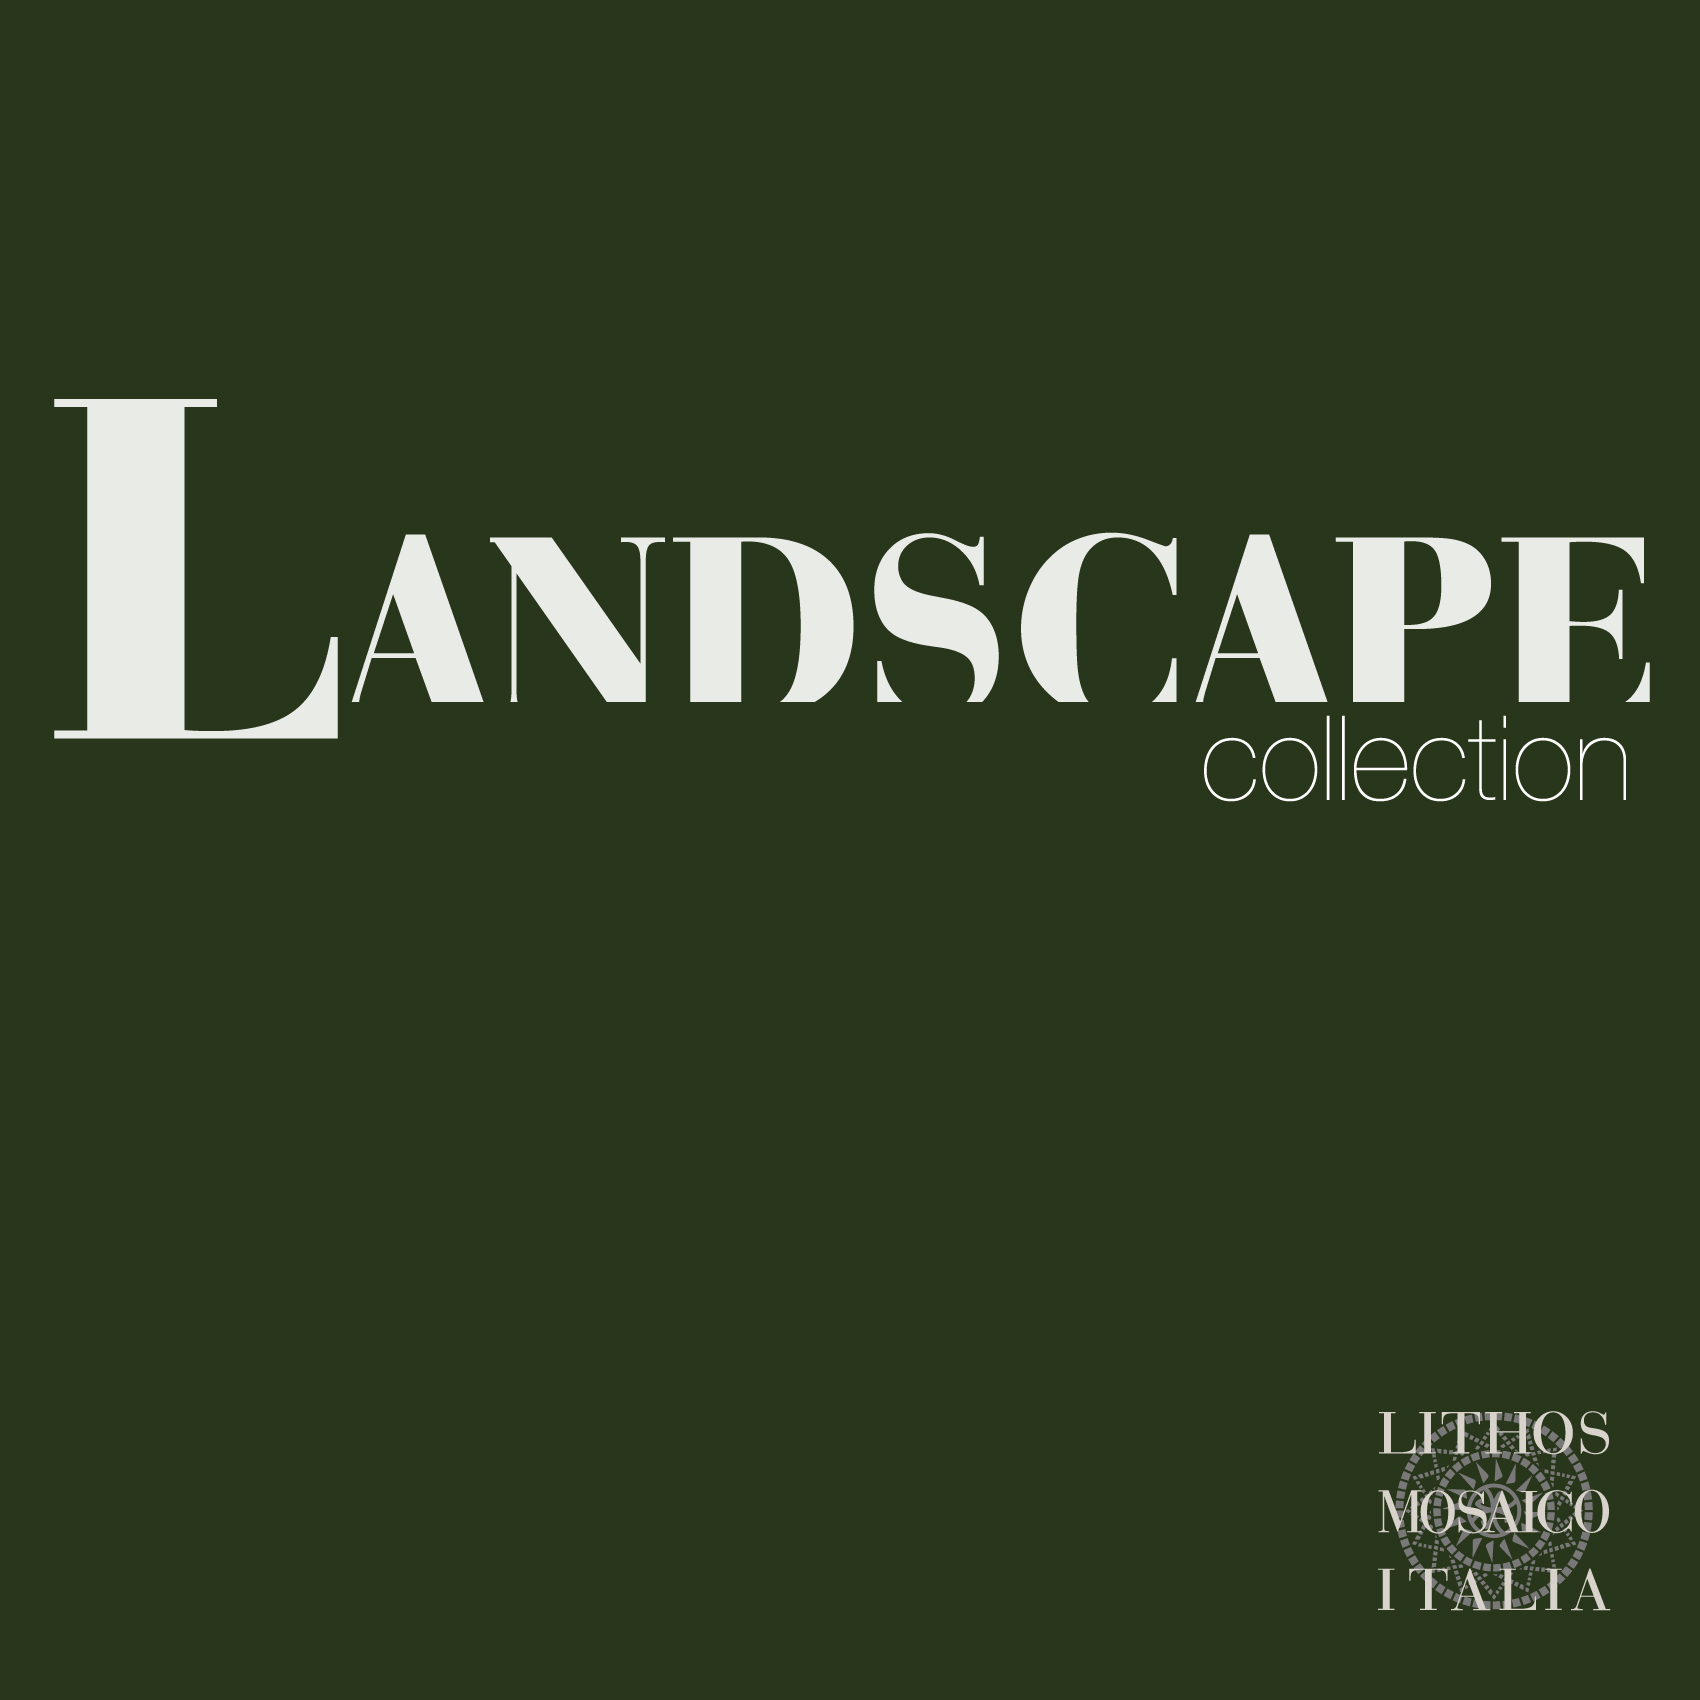 Landscape-Collection-cover Cataloghi